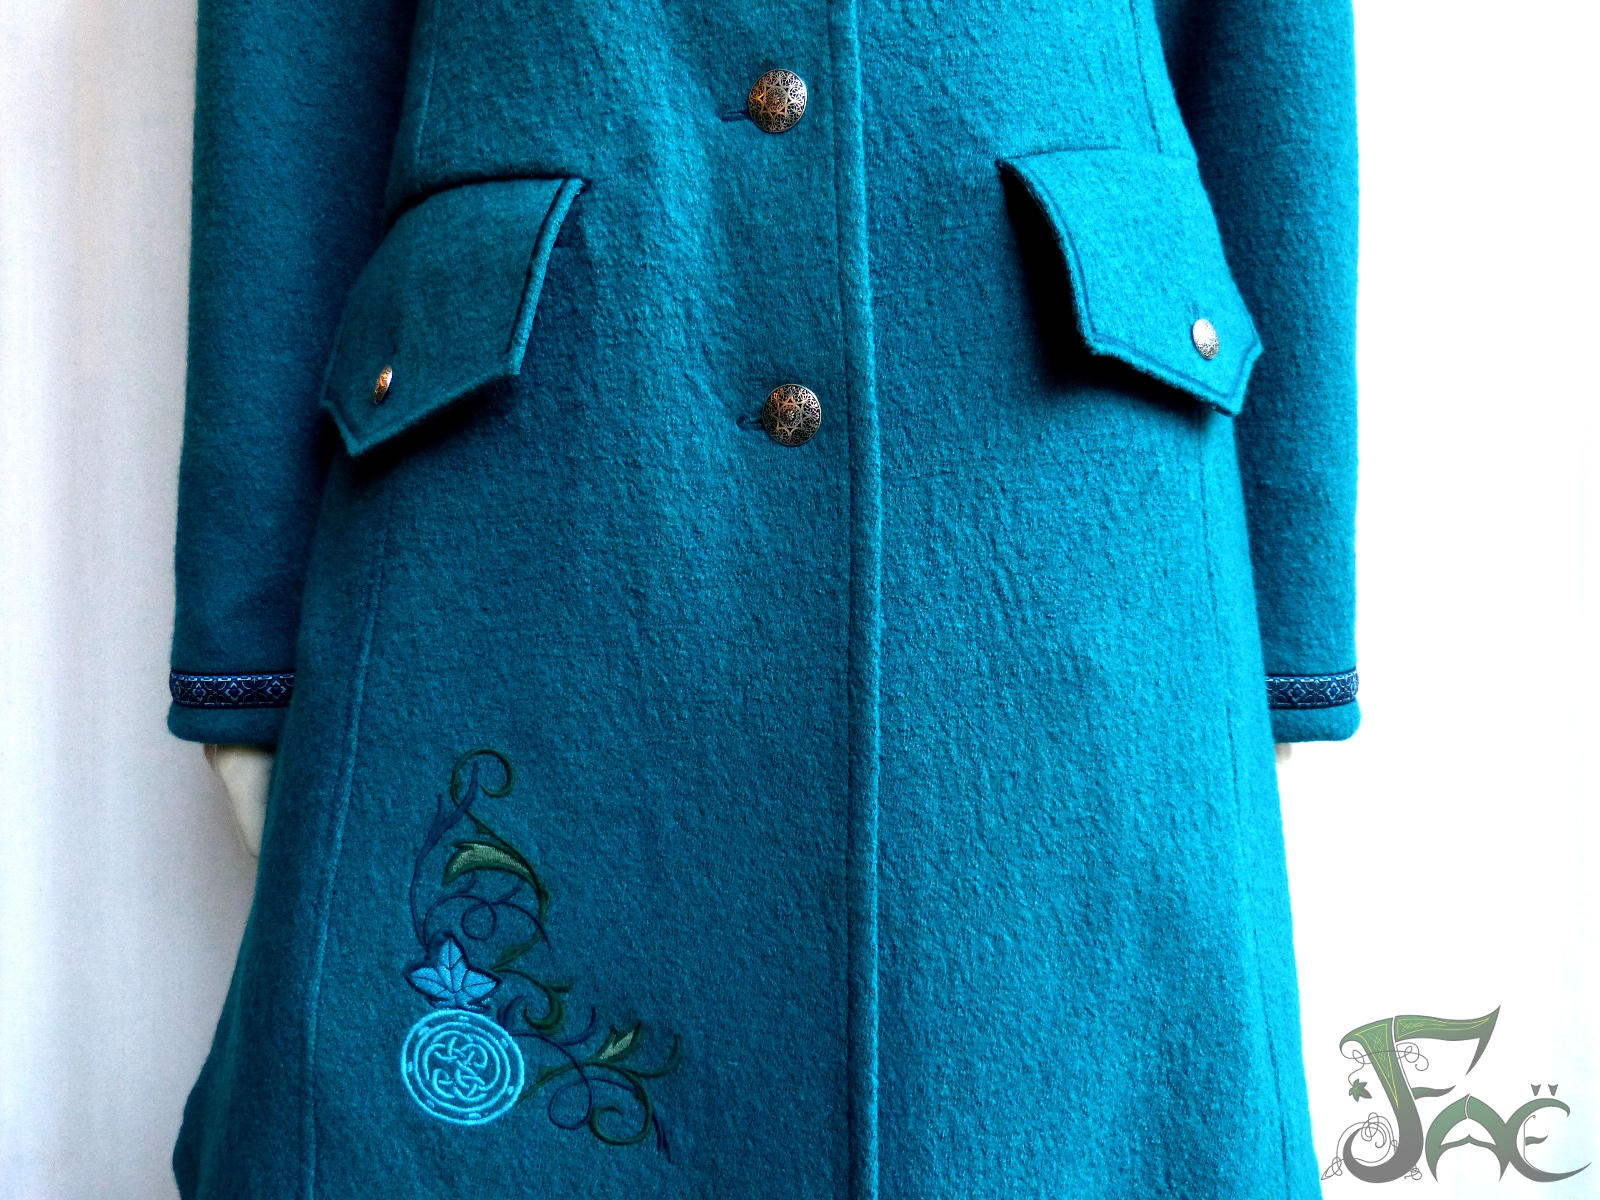 Manteau turquoise, broderie